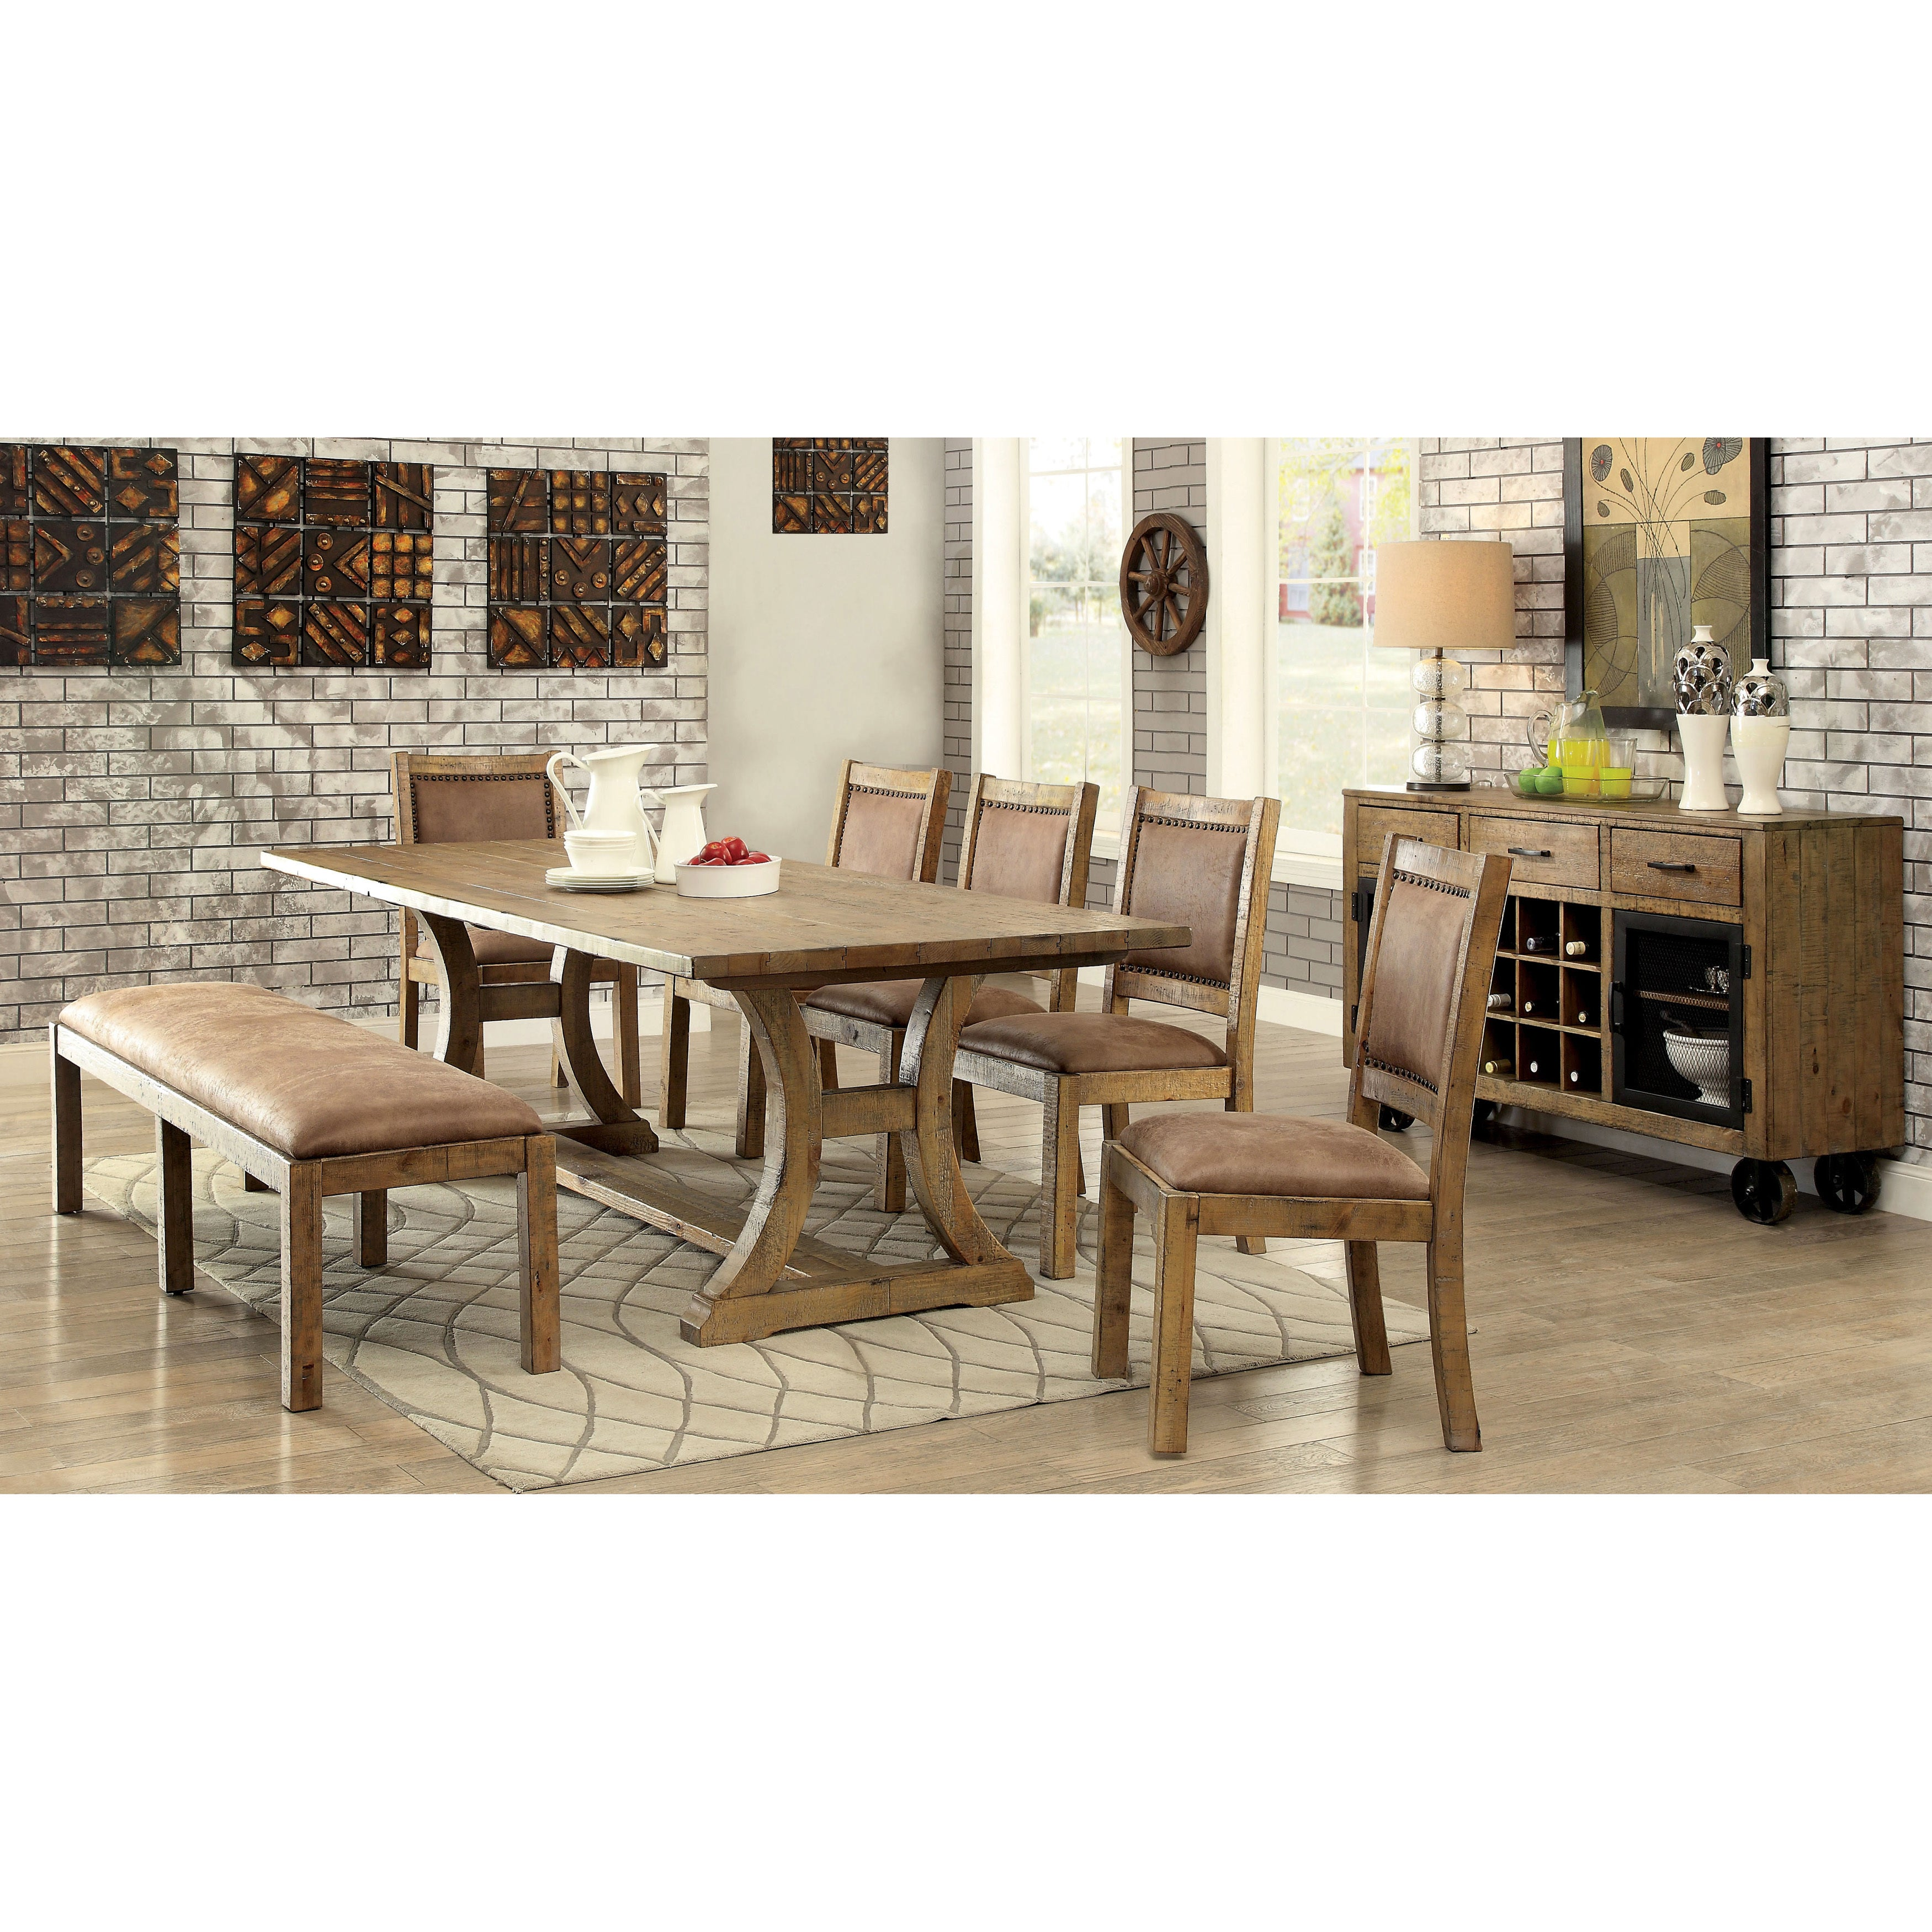 Furniture Of America Matthias Industrial Rustic Pine Upholstered Dining  Bench   Free Shipping Today   Overstock   18147487